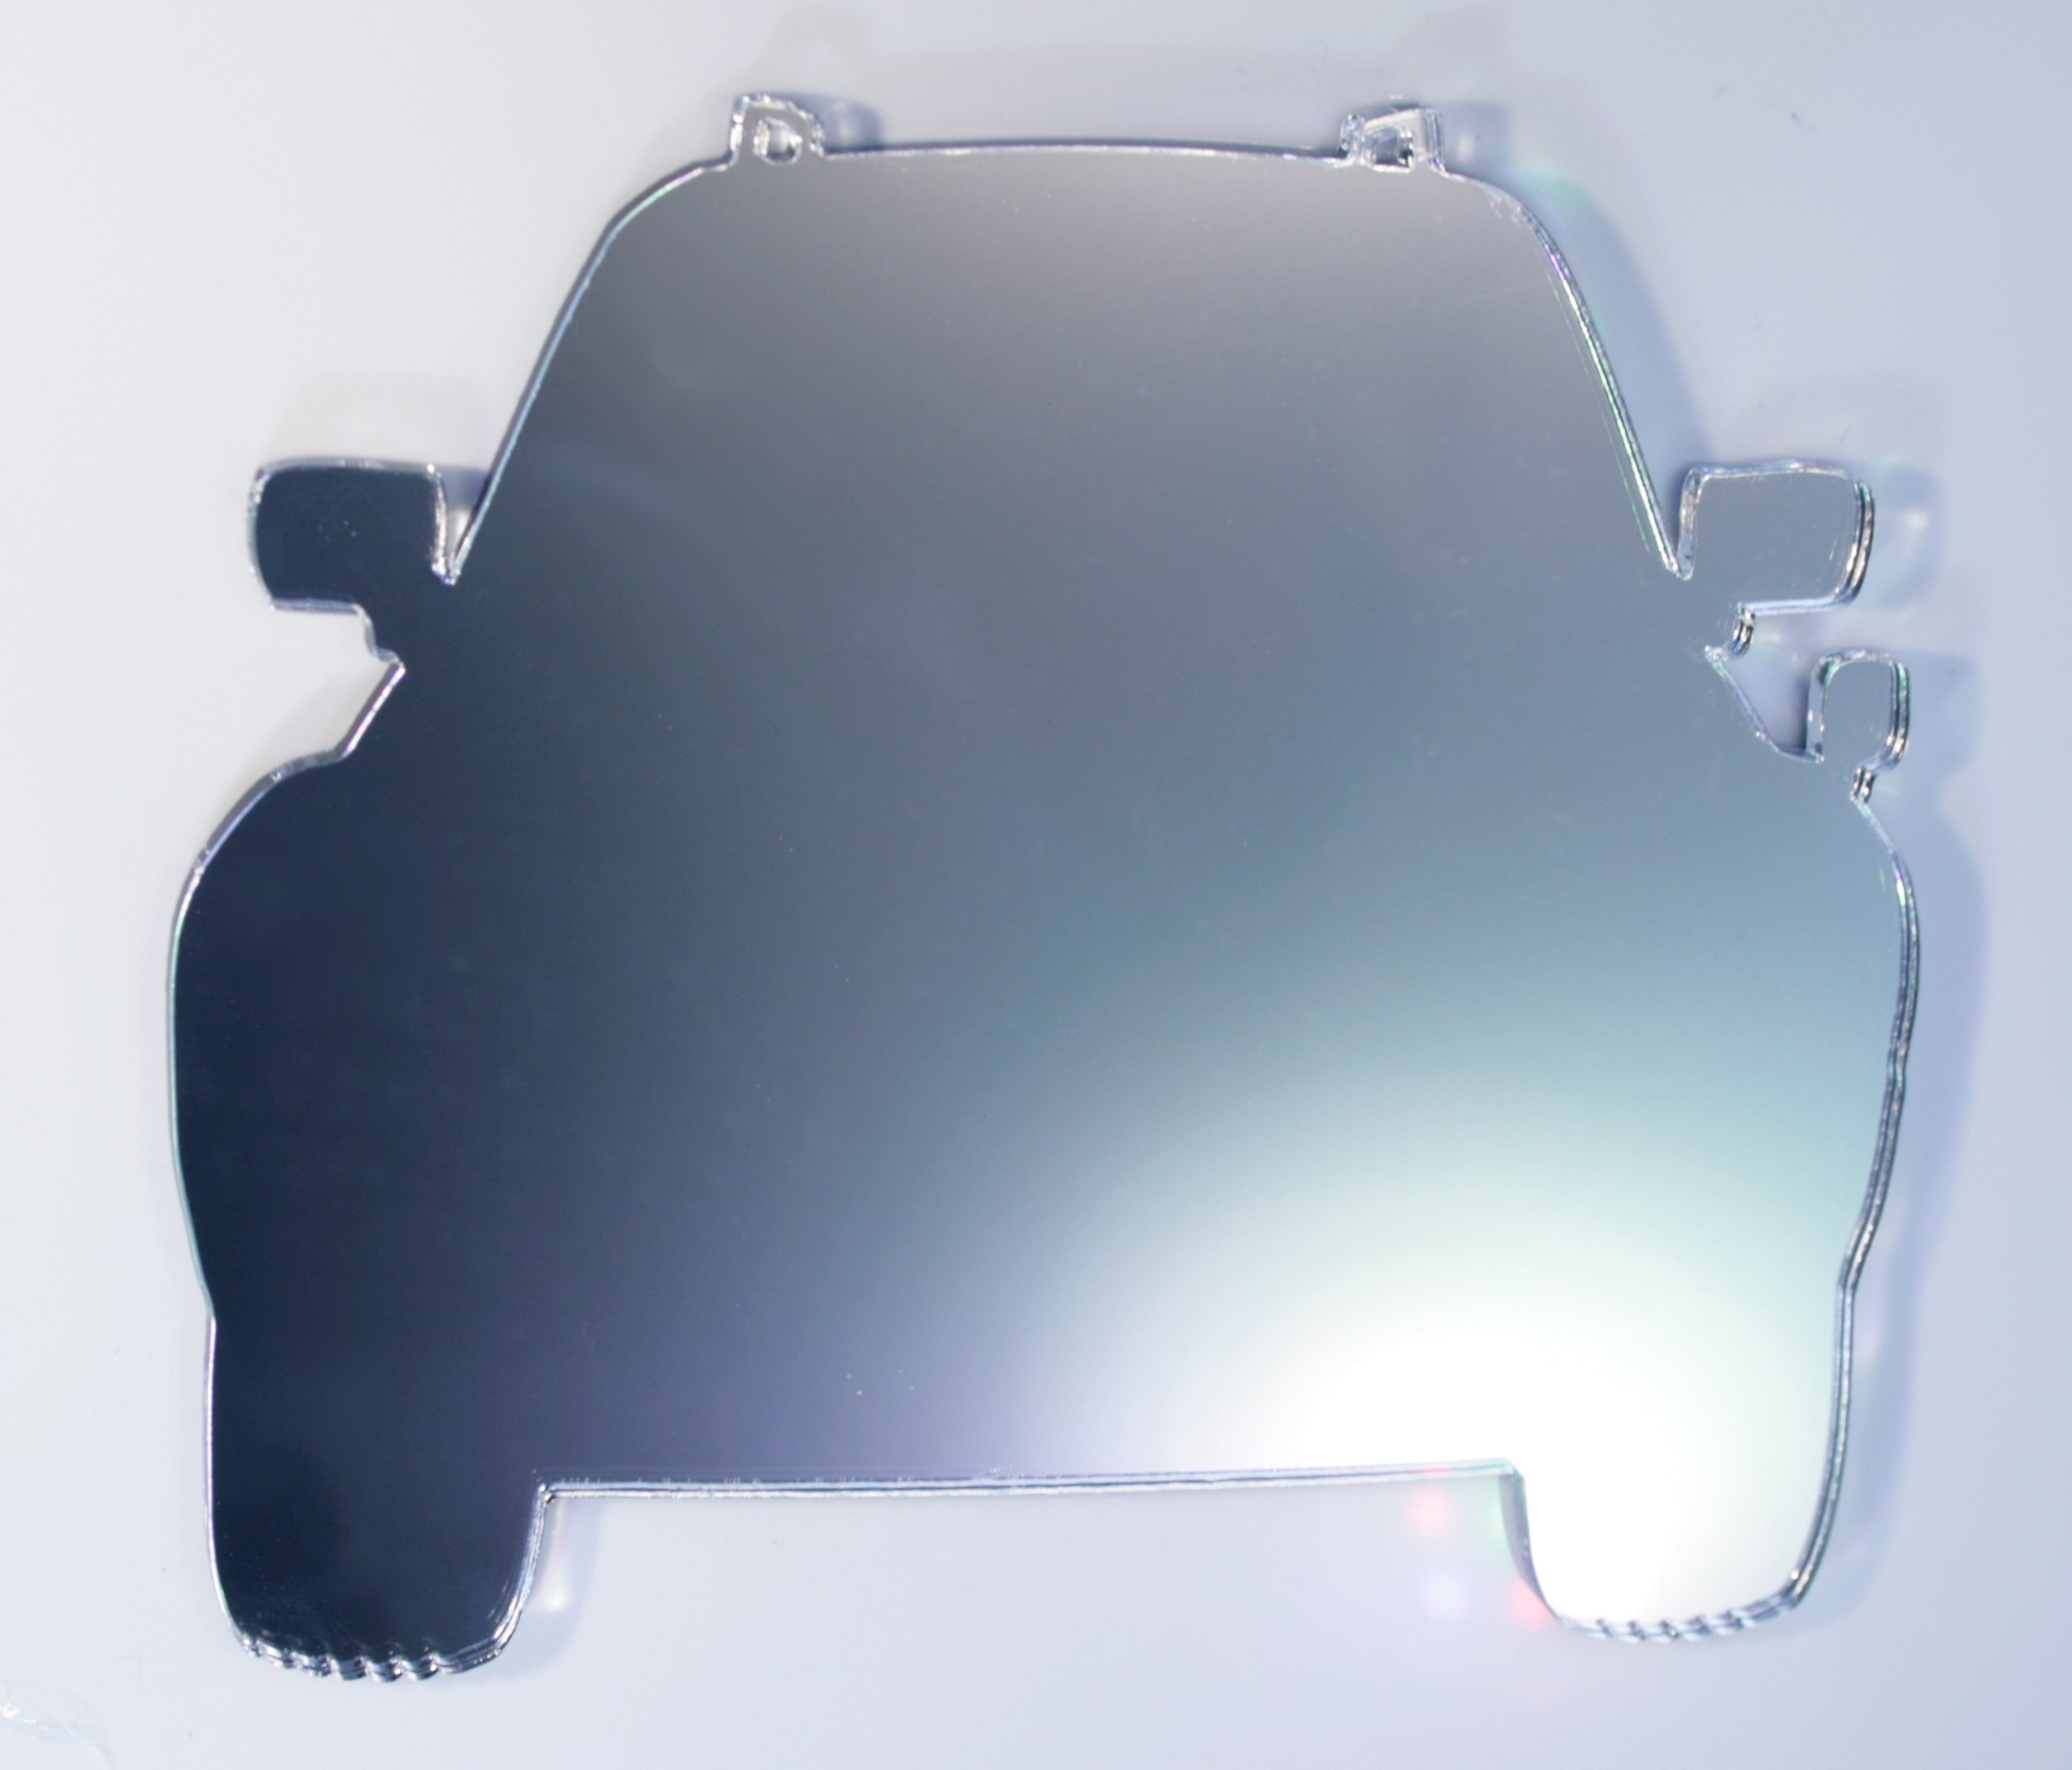 Car Mirror - Available in various sizes, including sets for crafting kits - 50cm x 43cm